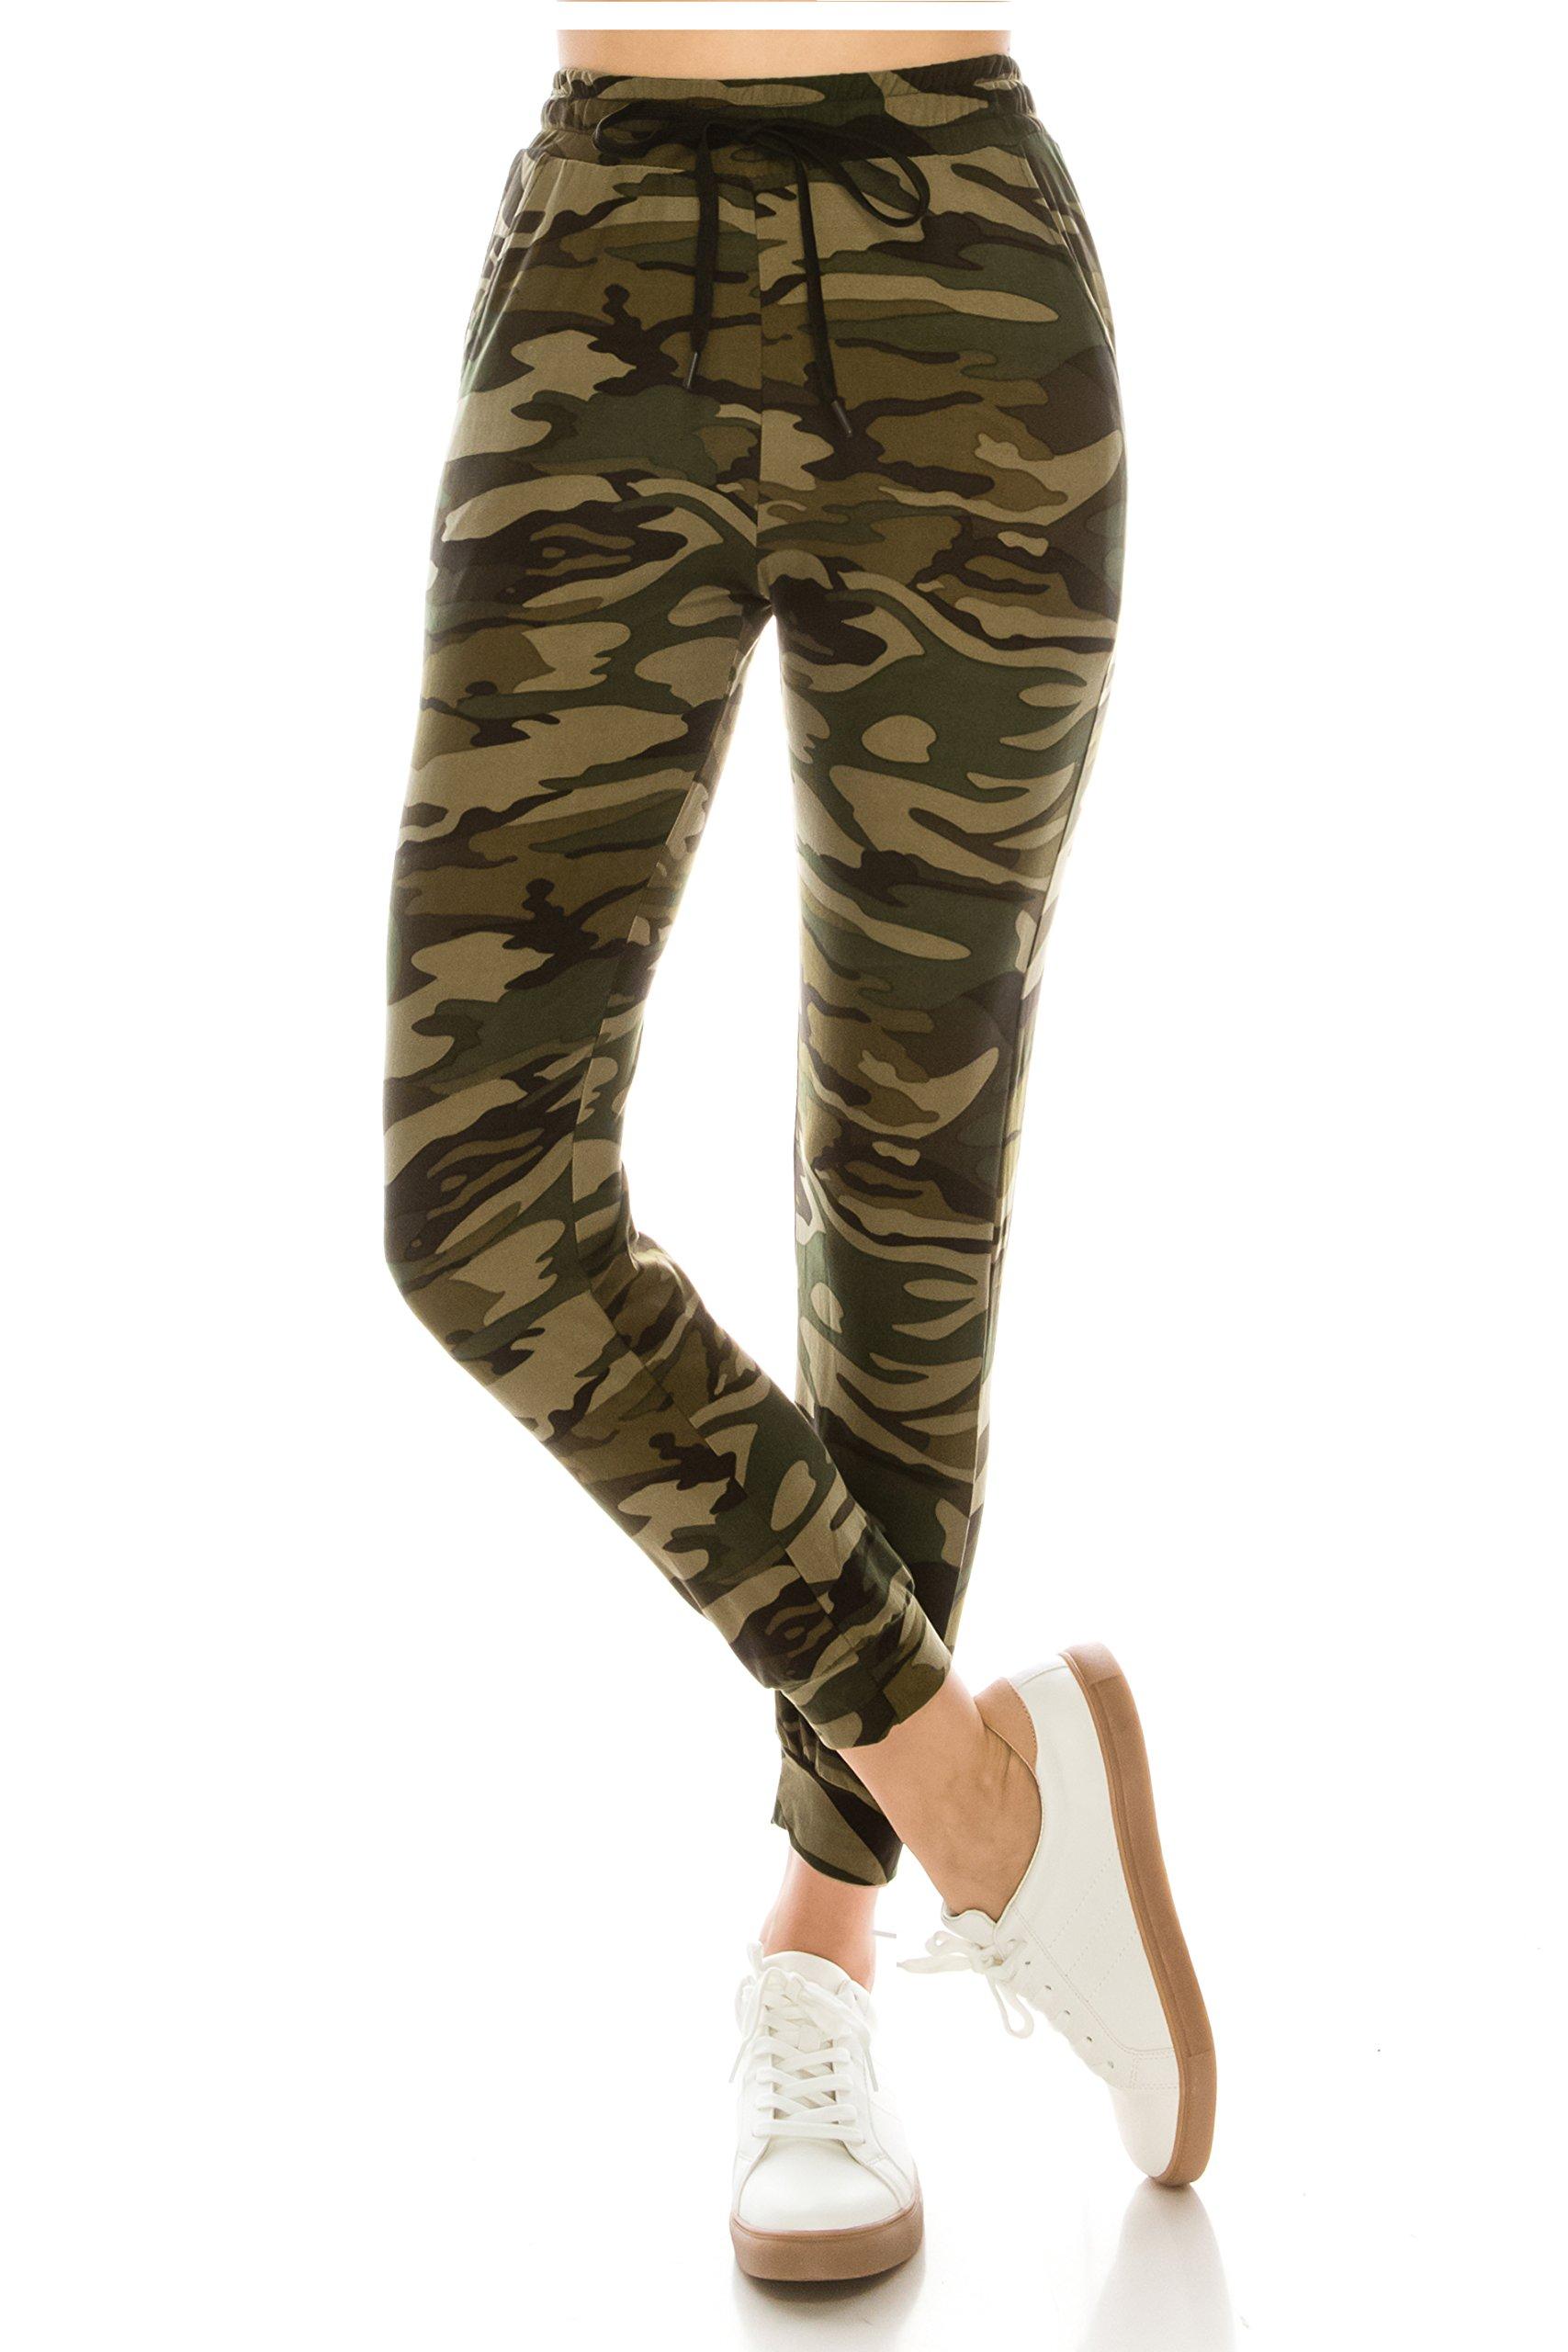 ALWAYS Women Drawstrings Jogger Sweatpants - Skinny Fit Premium Soft Stretch Camo Military Army Pockets Pants S/M by ALWAYS (Image #3)